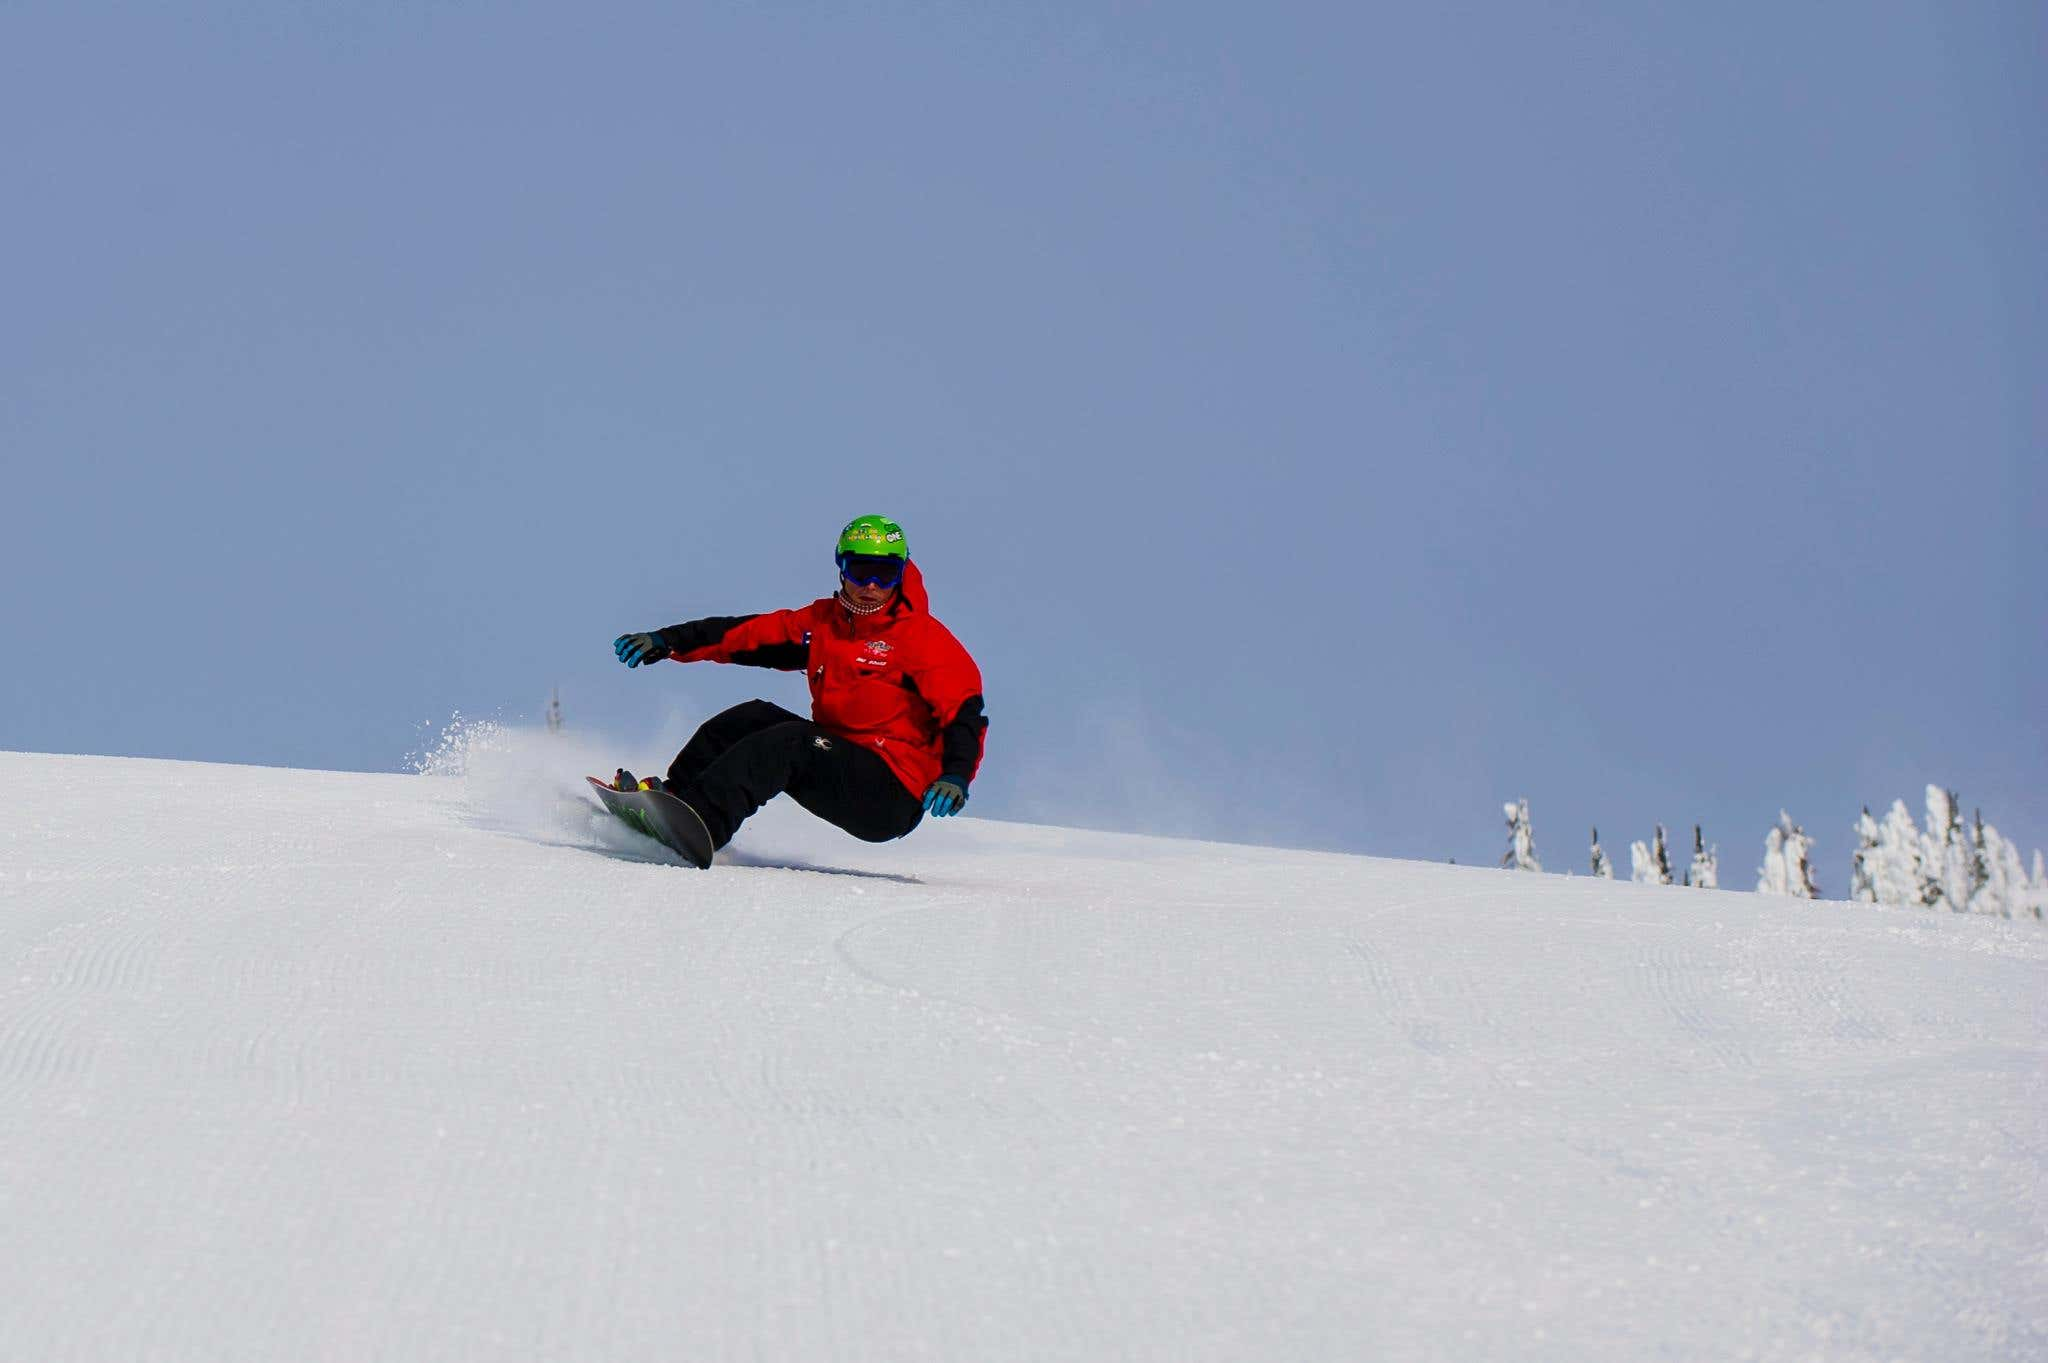 online snowboard course, learn to snowboard, snowboard fitness, how to snowboard